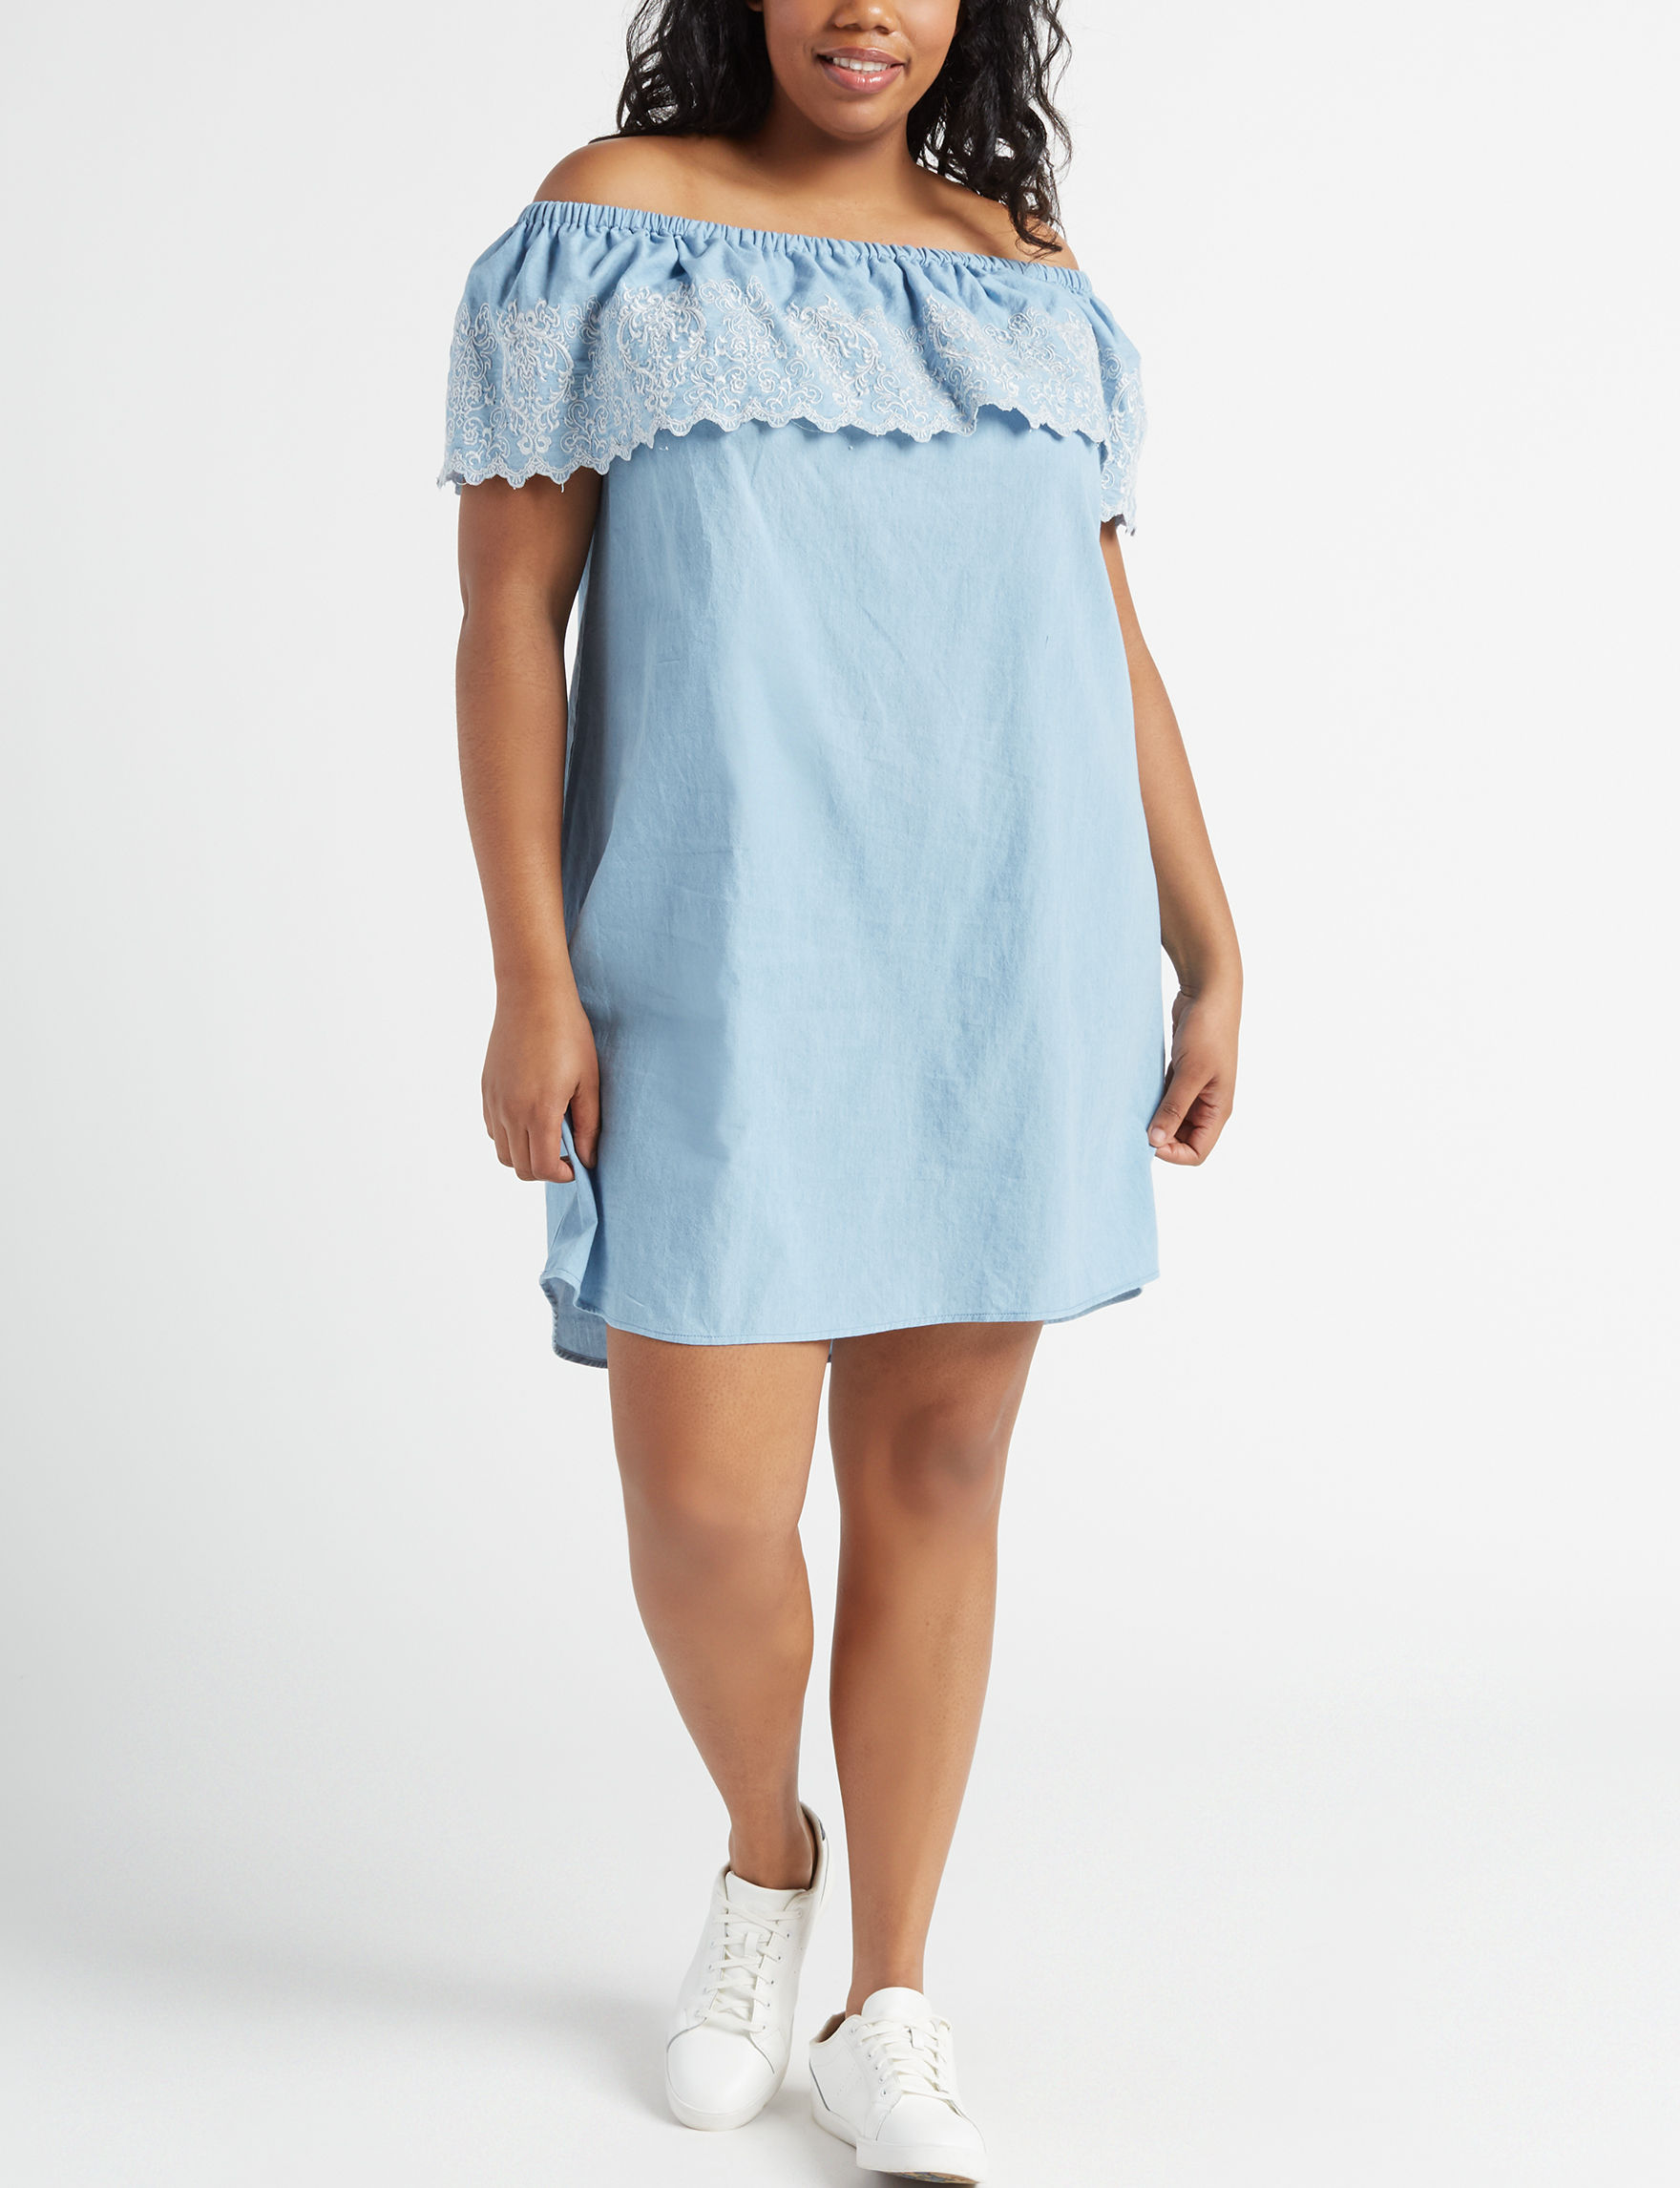 Wishful Park Blue Everyday & Casual Shift Dresses